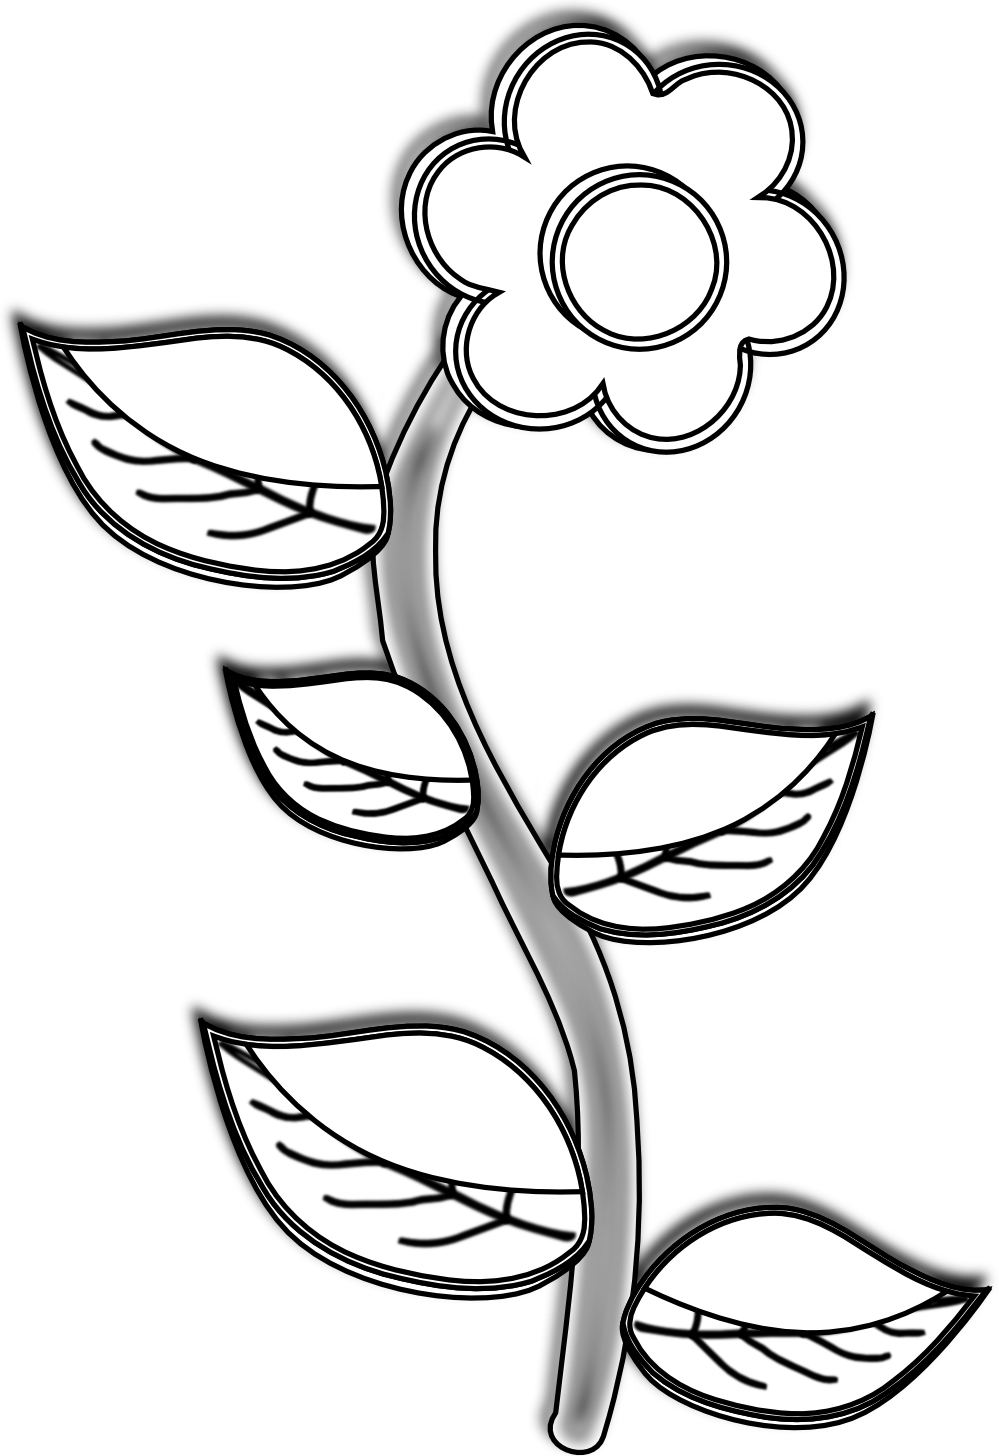 Bw clipart drawing stock Free Pictures Of Flower Drawings, Download Free Clip Art, Free Clip ... stock